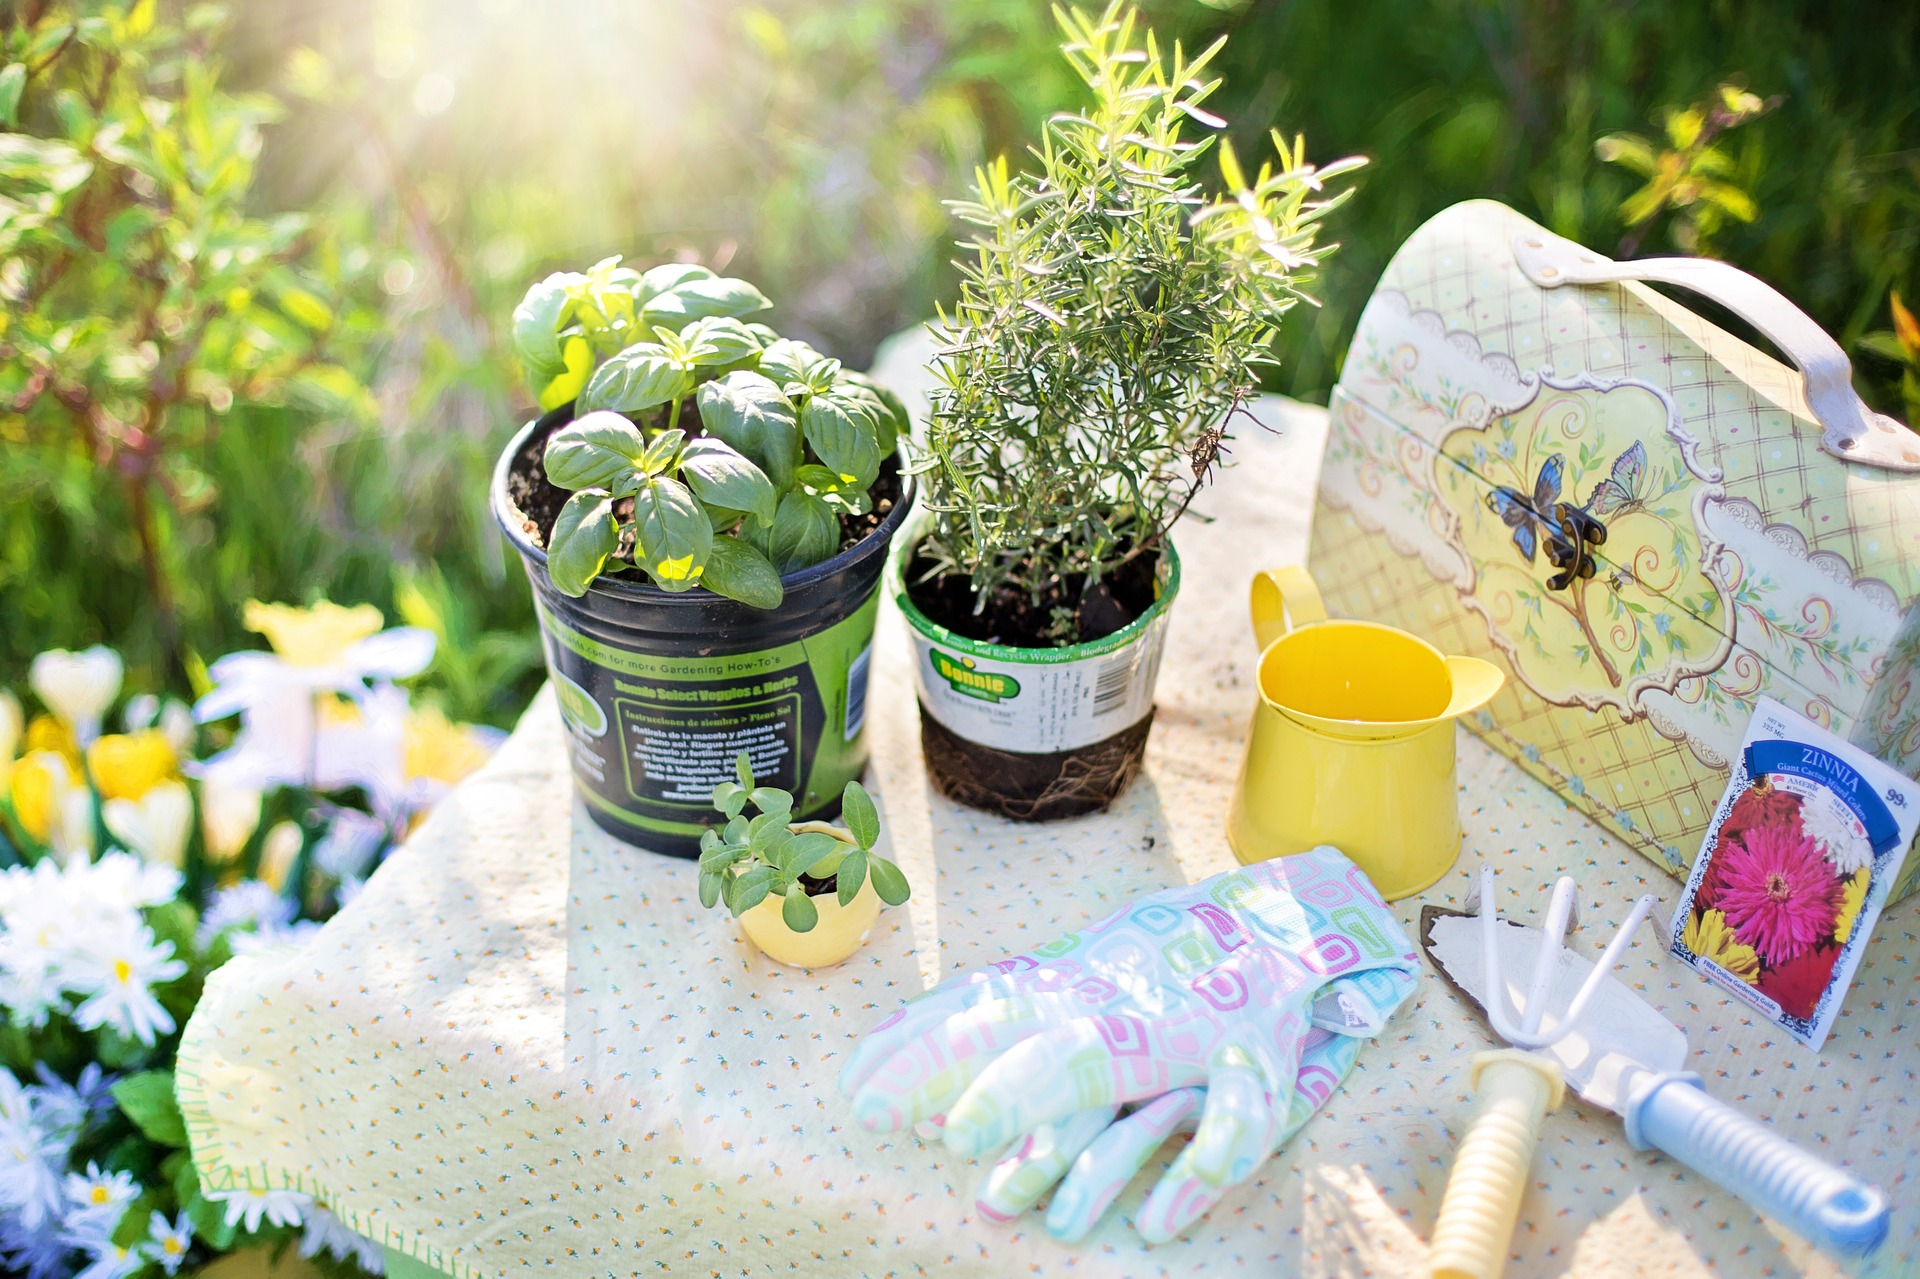 Potted herbs sitting on a table next to garden gloves